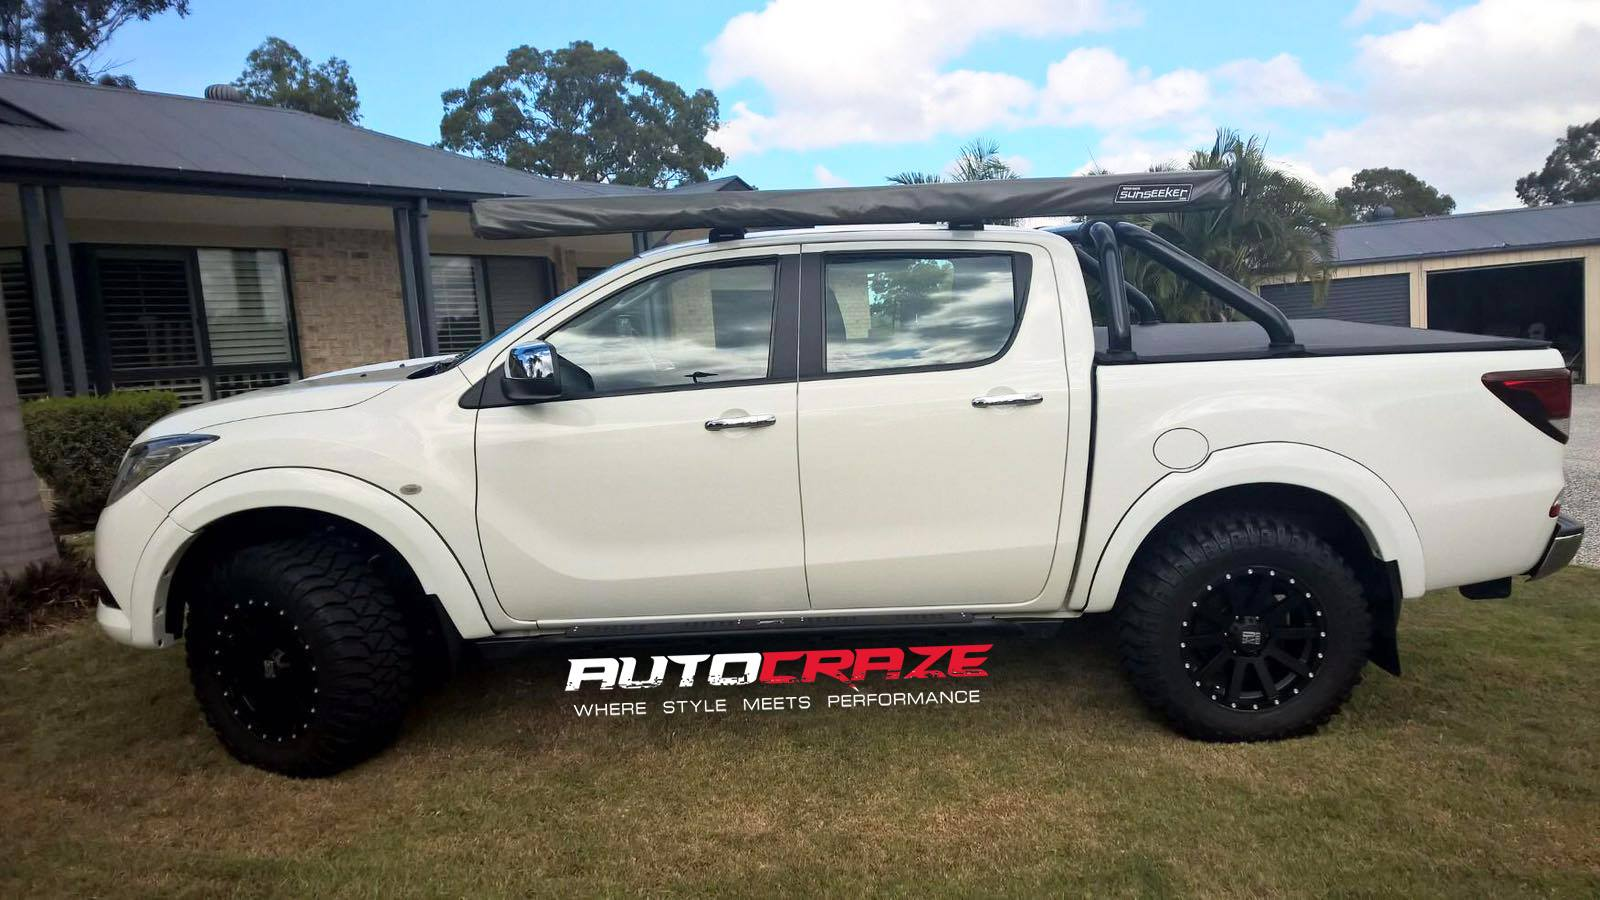 Mazda Bt 50 >> 4WD Tyres 18inch Rims | Best 4x4 Tires And Wheels Australia